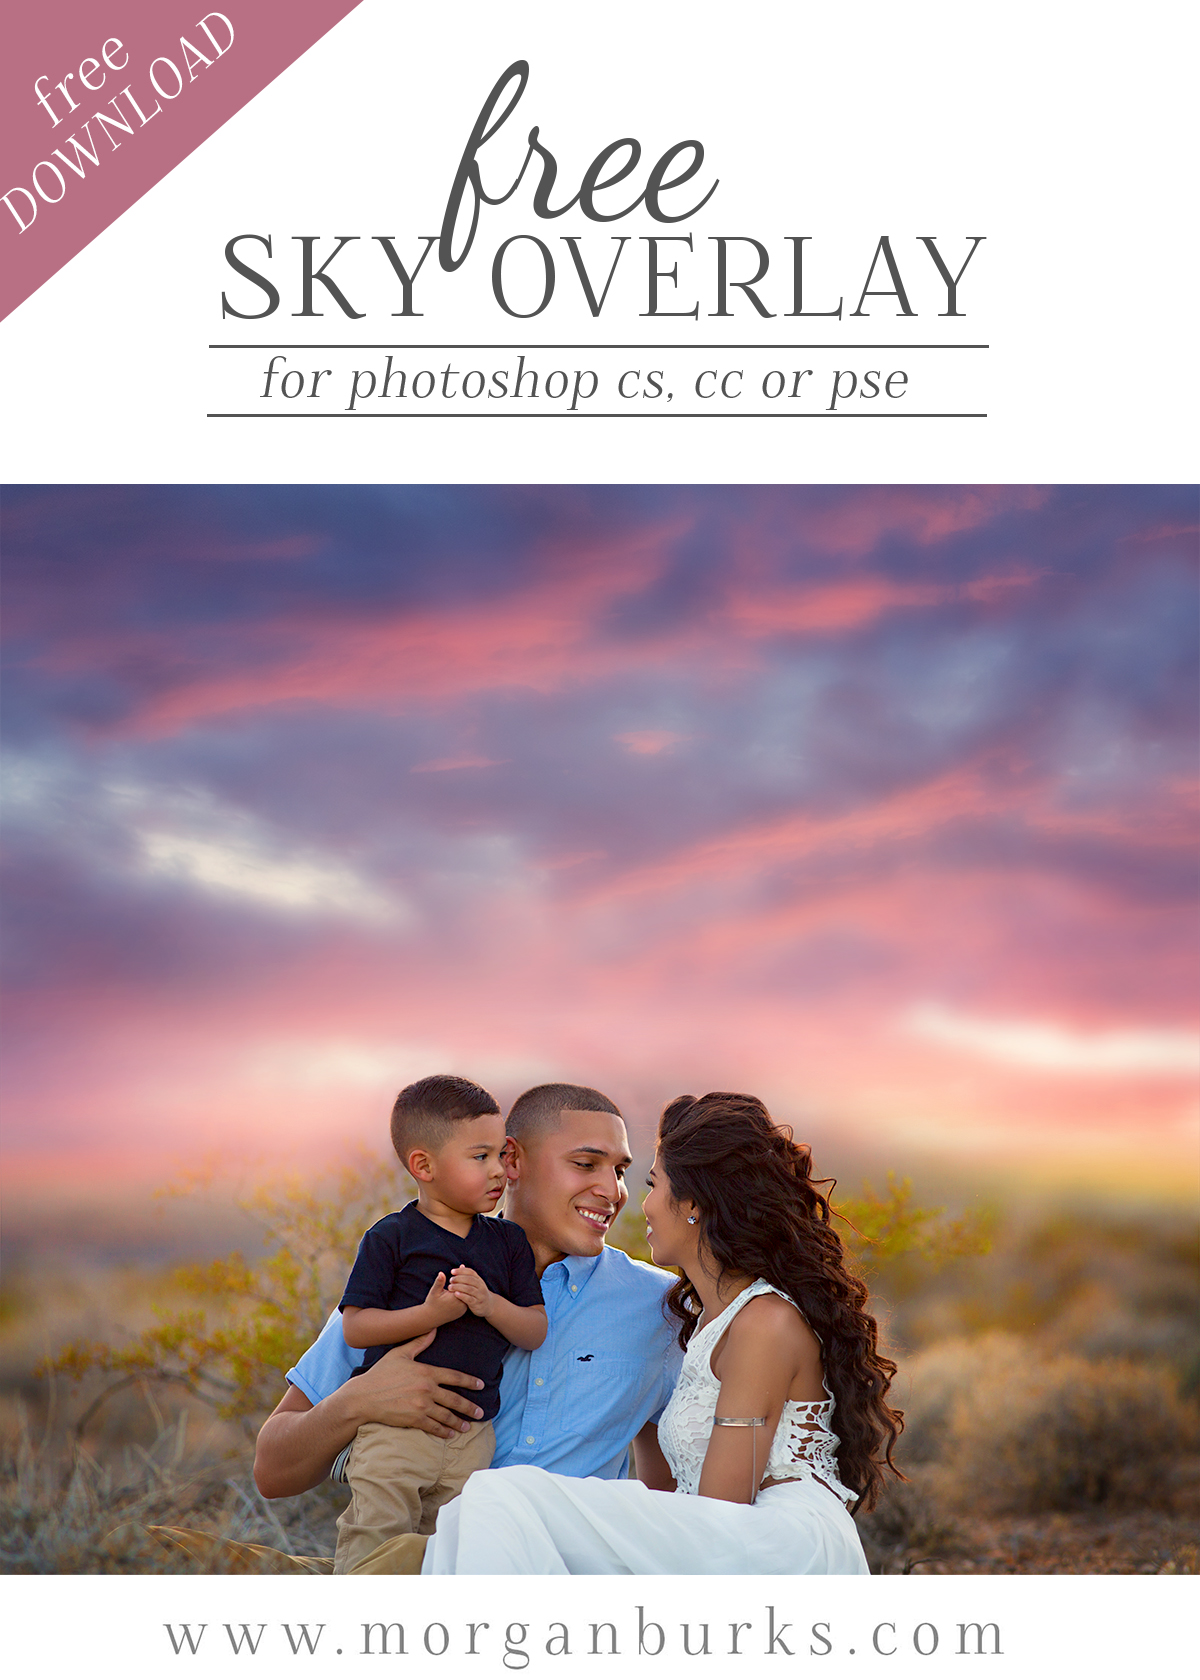 Free Sunset Sky Overlay For Photoshop and Elements - Morgan